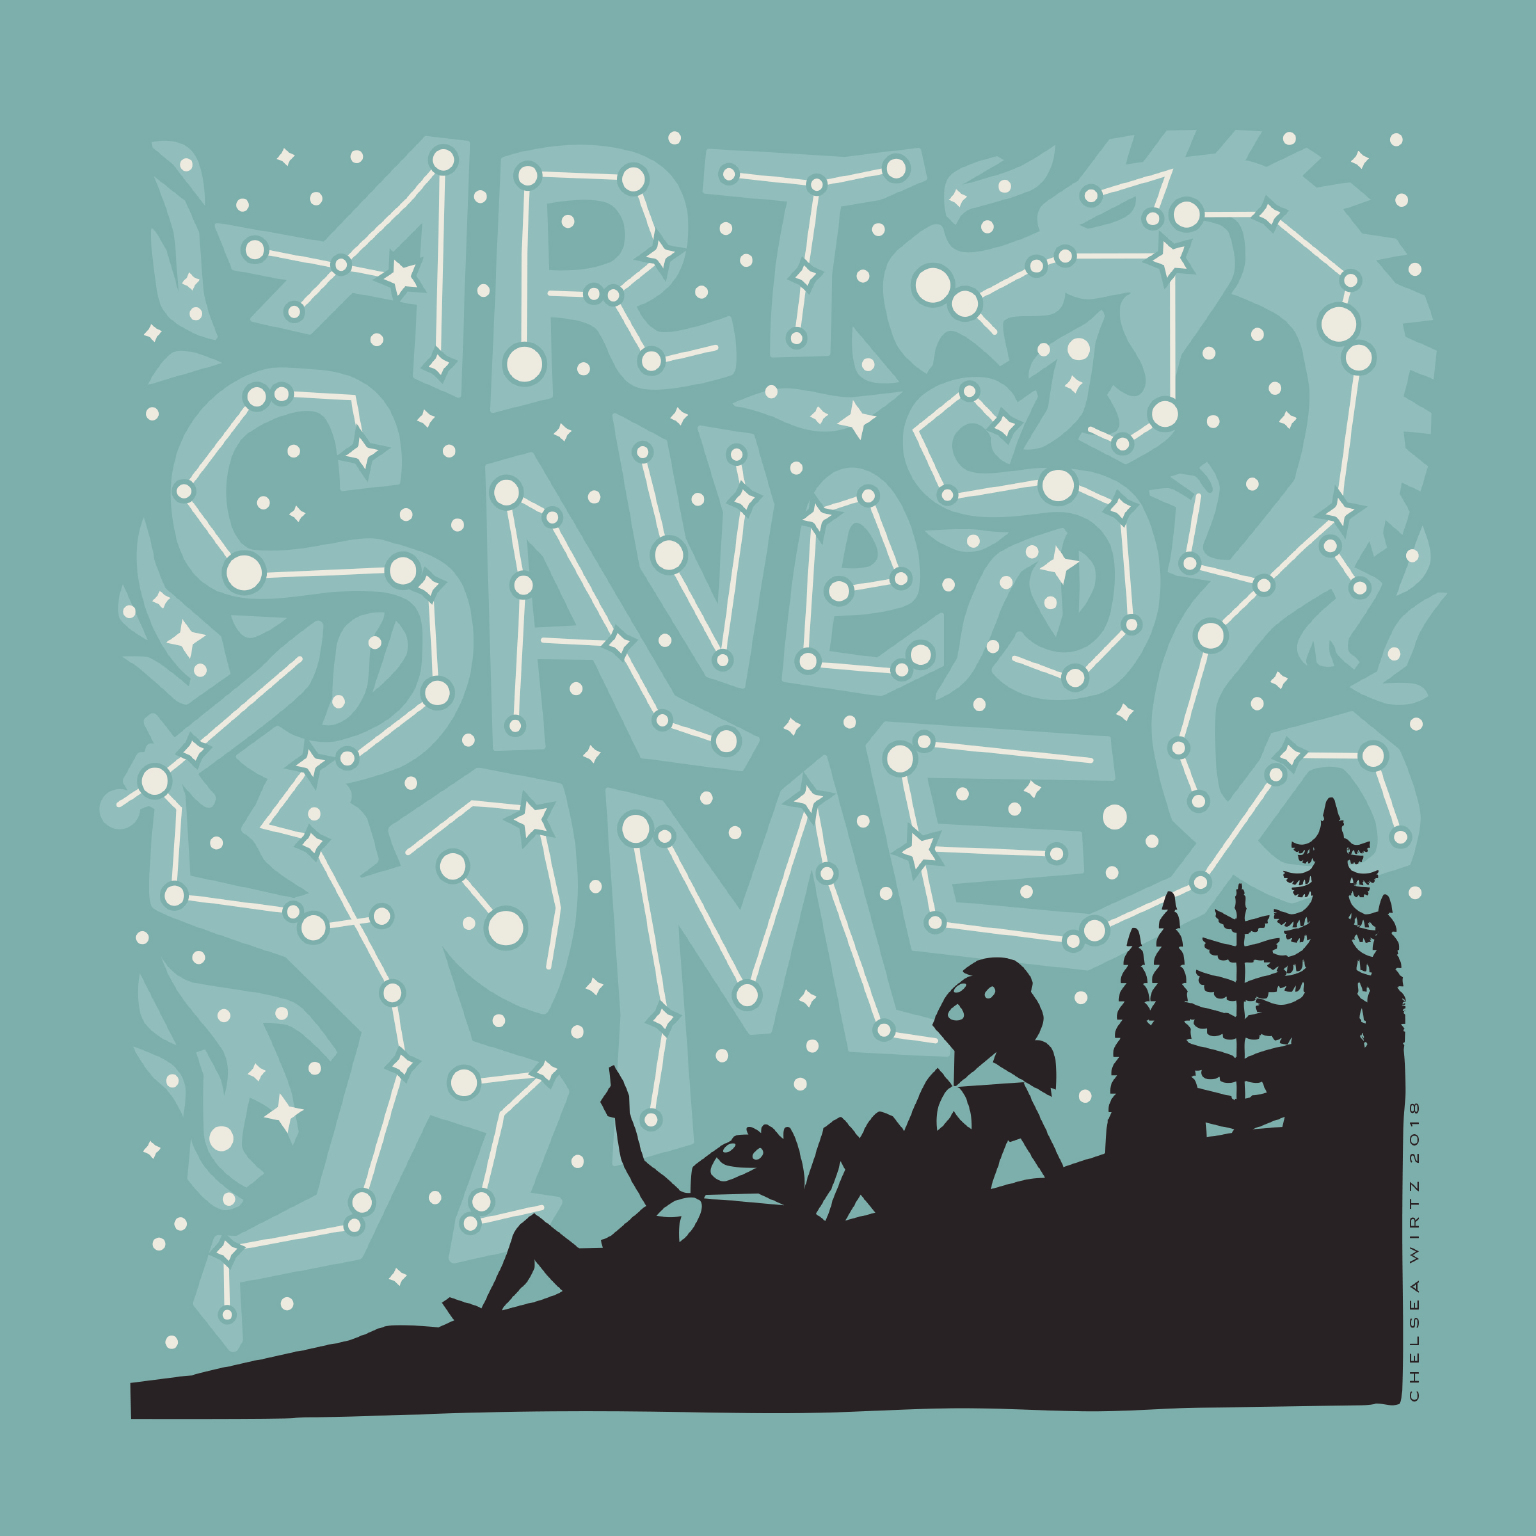 The artwork shown here is a limited edition reissue of Chelsea Wirtz's 2010 ART SAVES ME artwork created for Bumbershoot.  @goodmorning_goodnight_